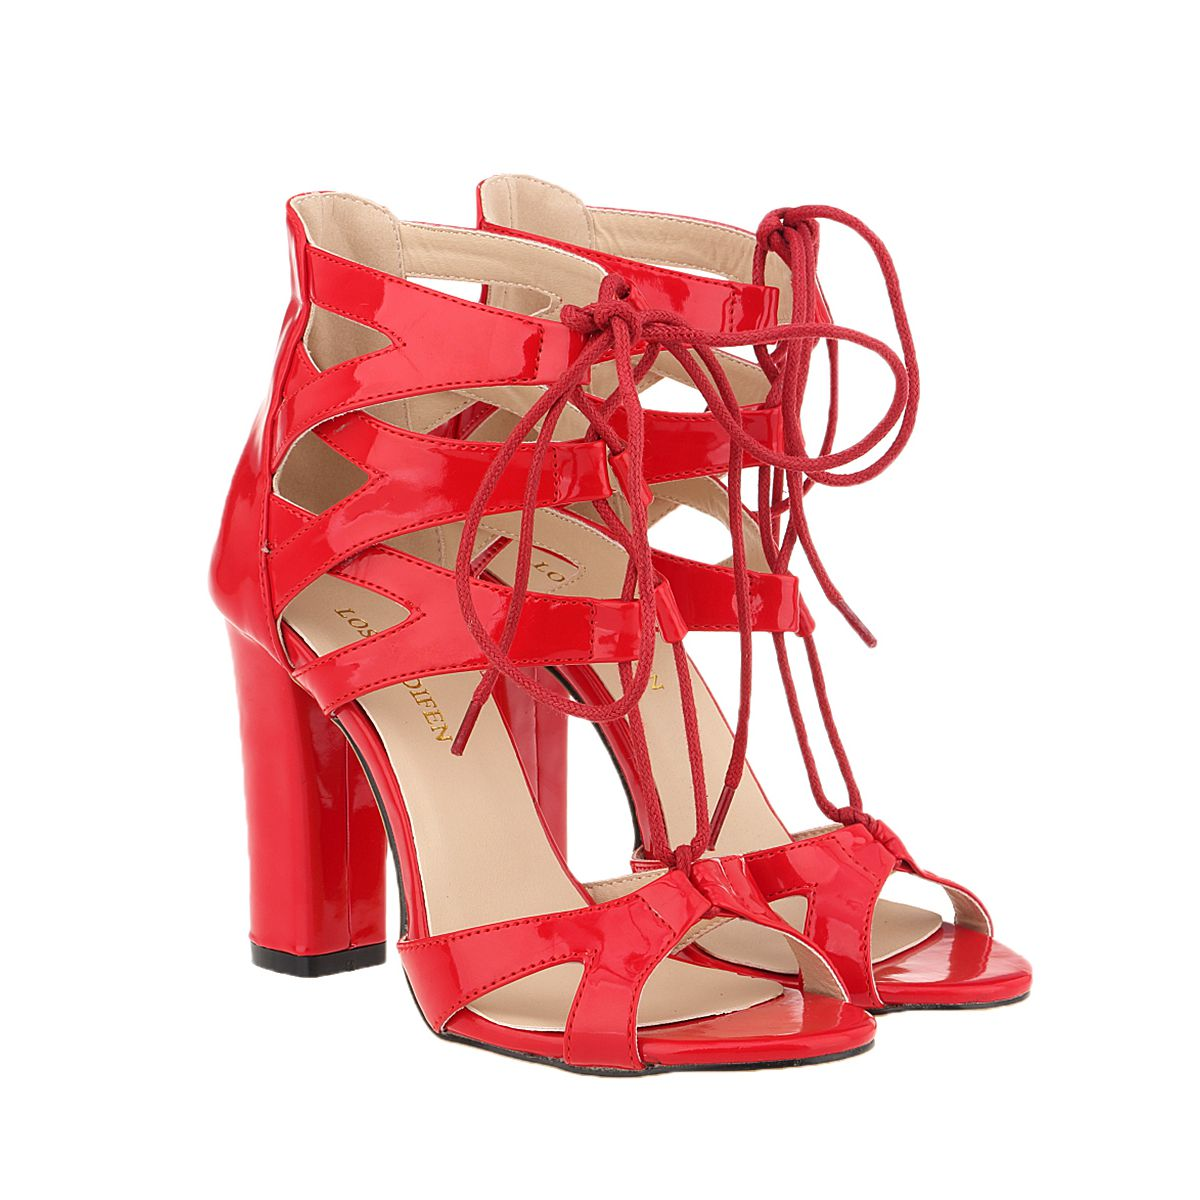 New 2016 Fashion Women Shoes Sandals Shoes Square Open Toe Ankle Straps Thick High Heels Summer BRIDAL PATENT LEATHER 368A-PA new fashion women casual shoes women sandals 2016 thick high square heels sandals black flock pumps